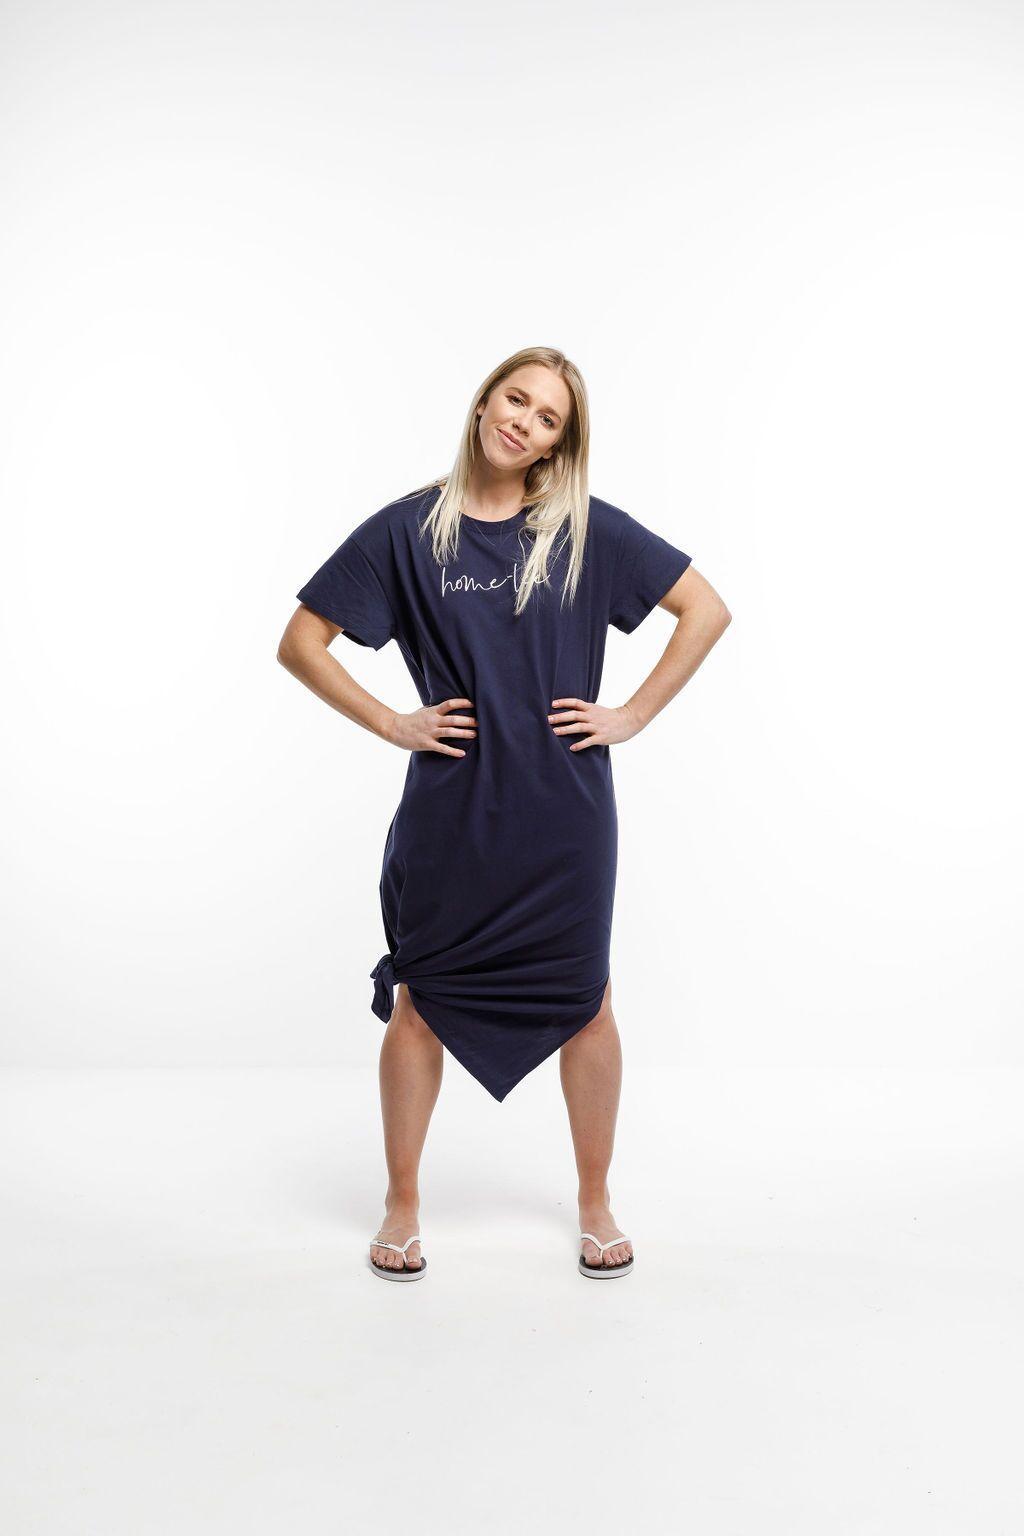 Home-Lee: Boyfriend Midi Dress - Navy With White Home Lee Embroidery - 12 image